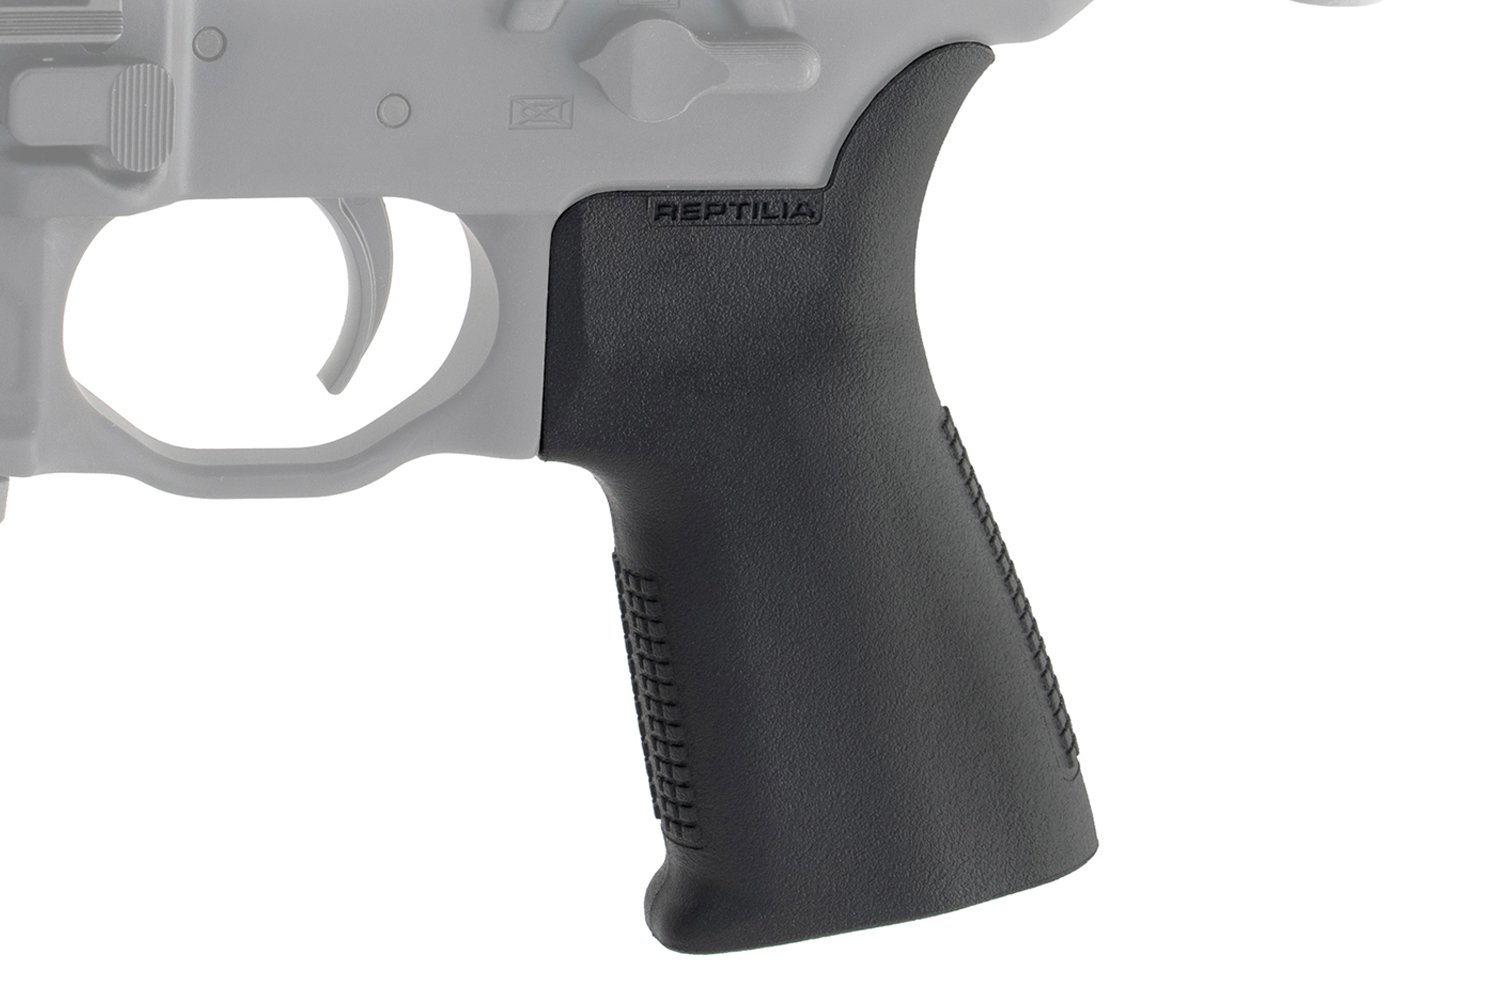 rep-productionphoto-CQG-grip-rattler_copy_1512x